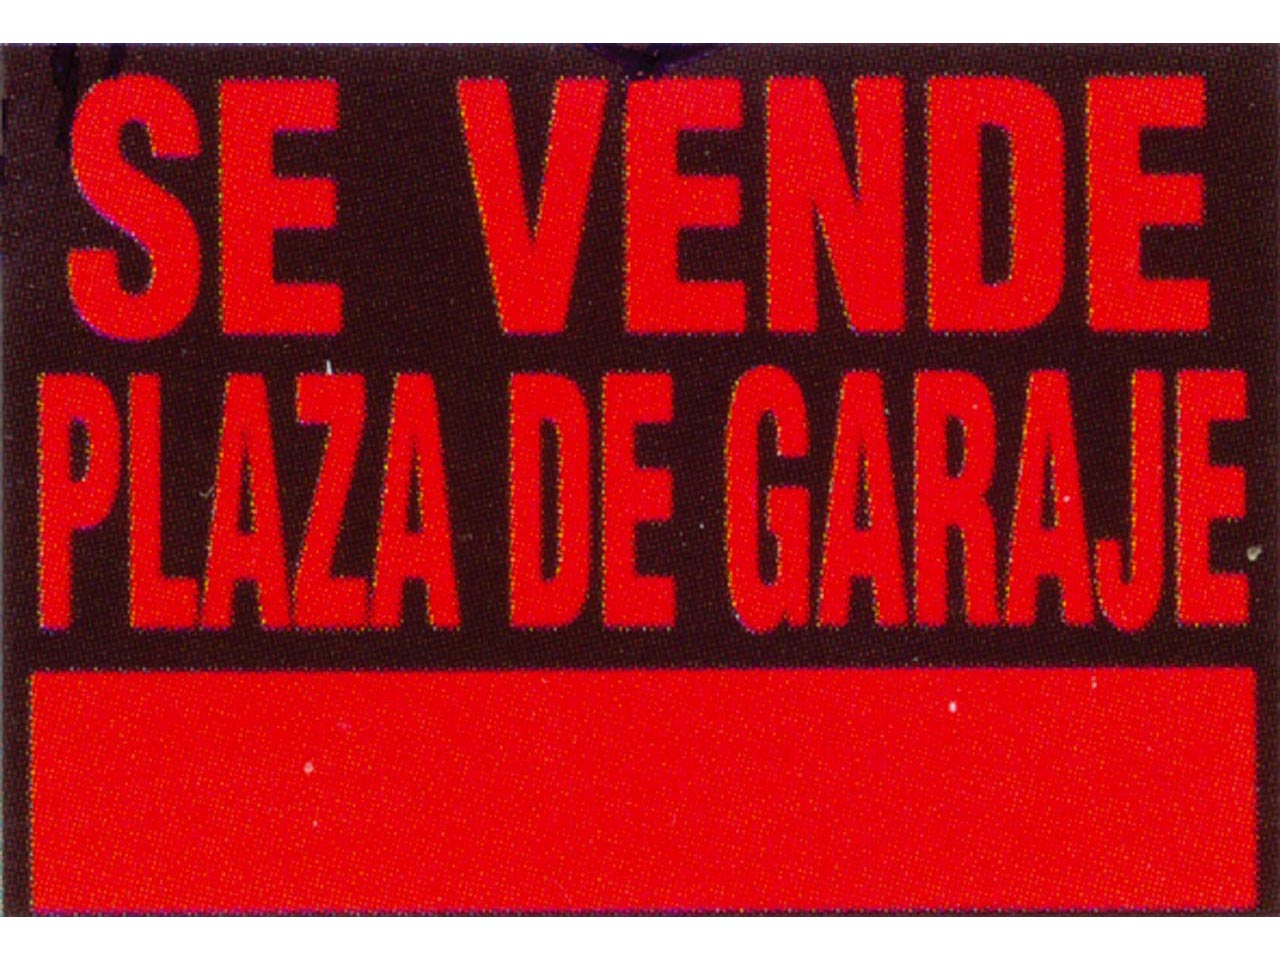 Sufersa cartel se vende plaza garaje for Se vende plaza de parking